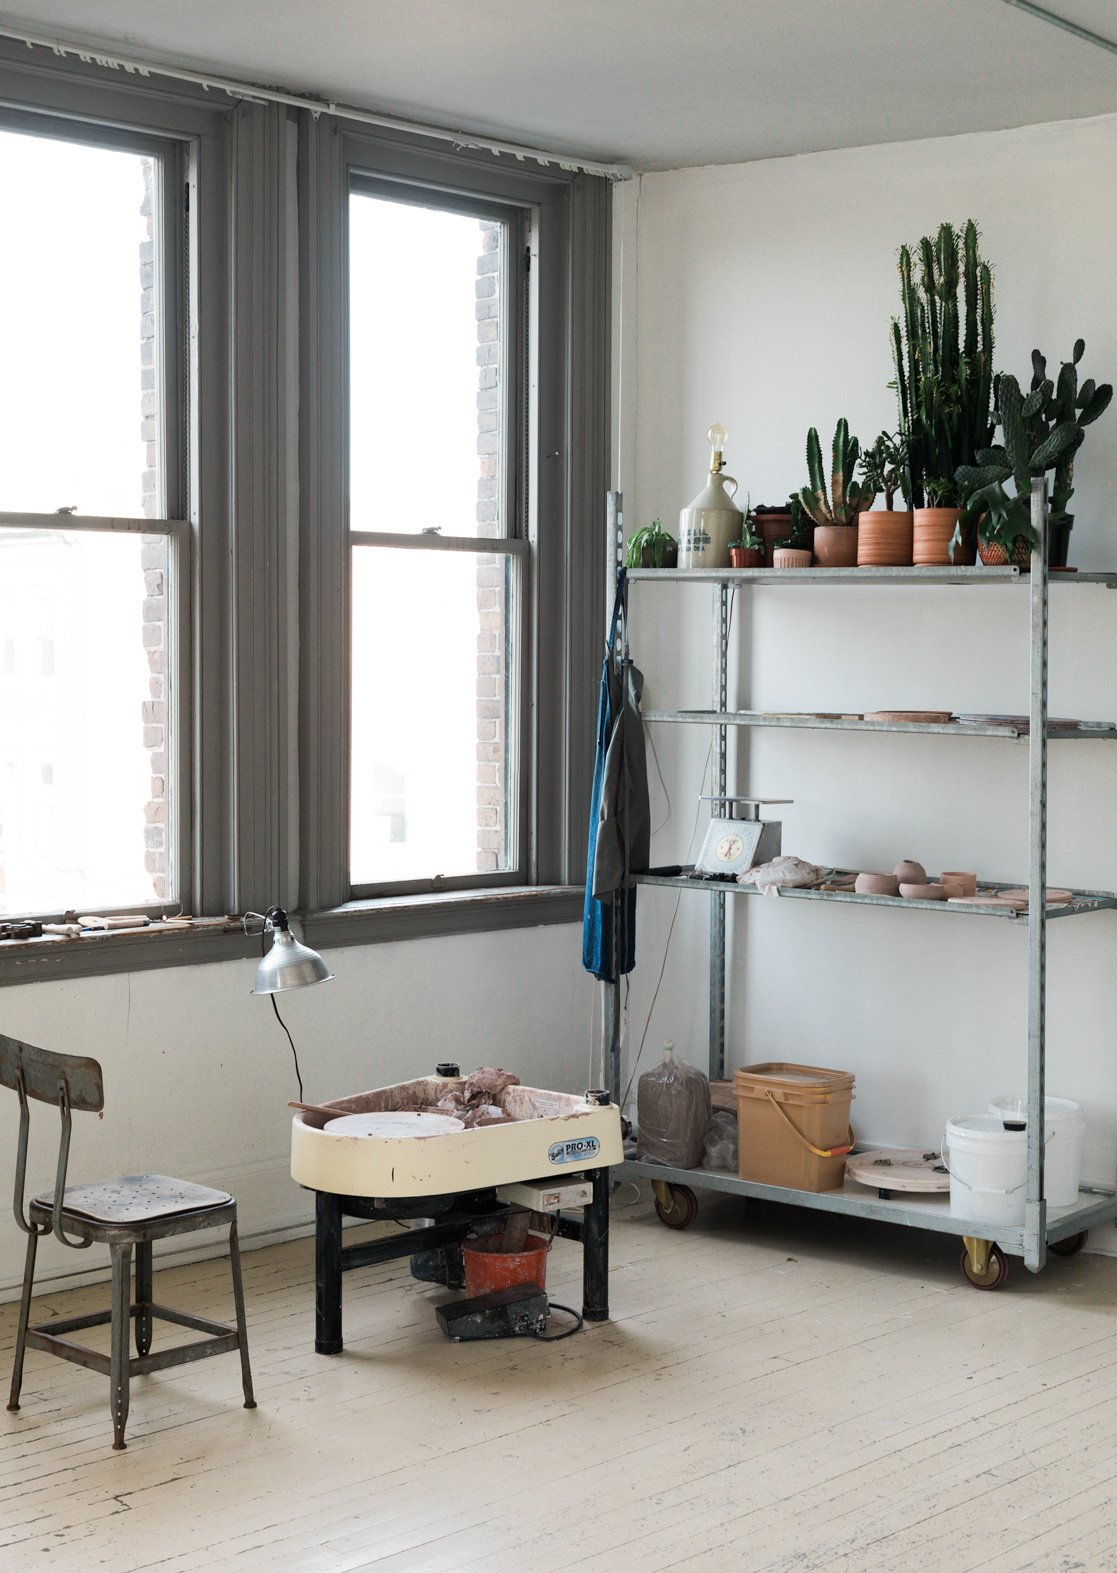 In one corner of the studio, Spellman has an area dedicated to ceramics, as pictured above.